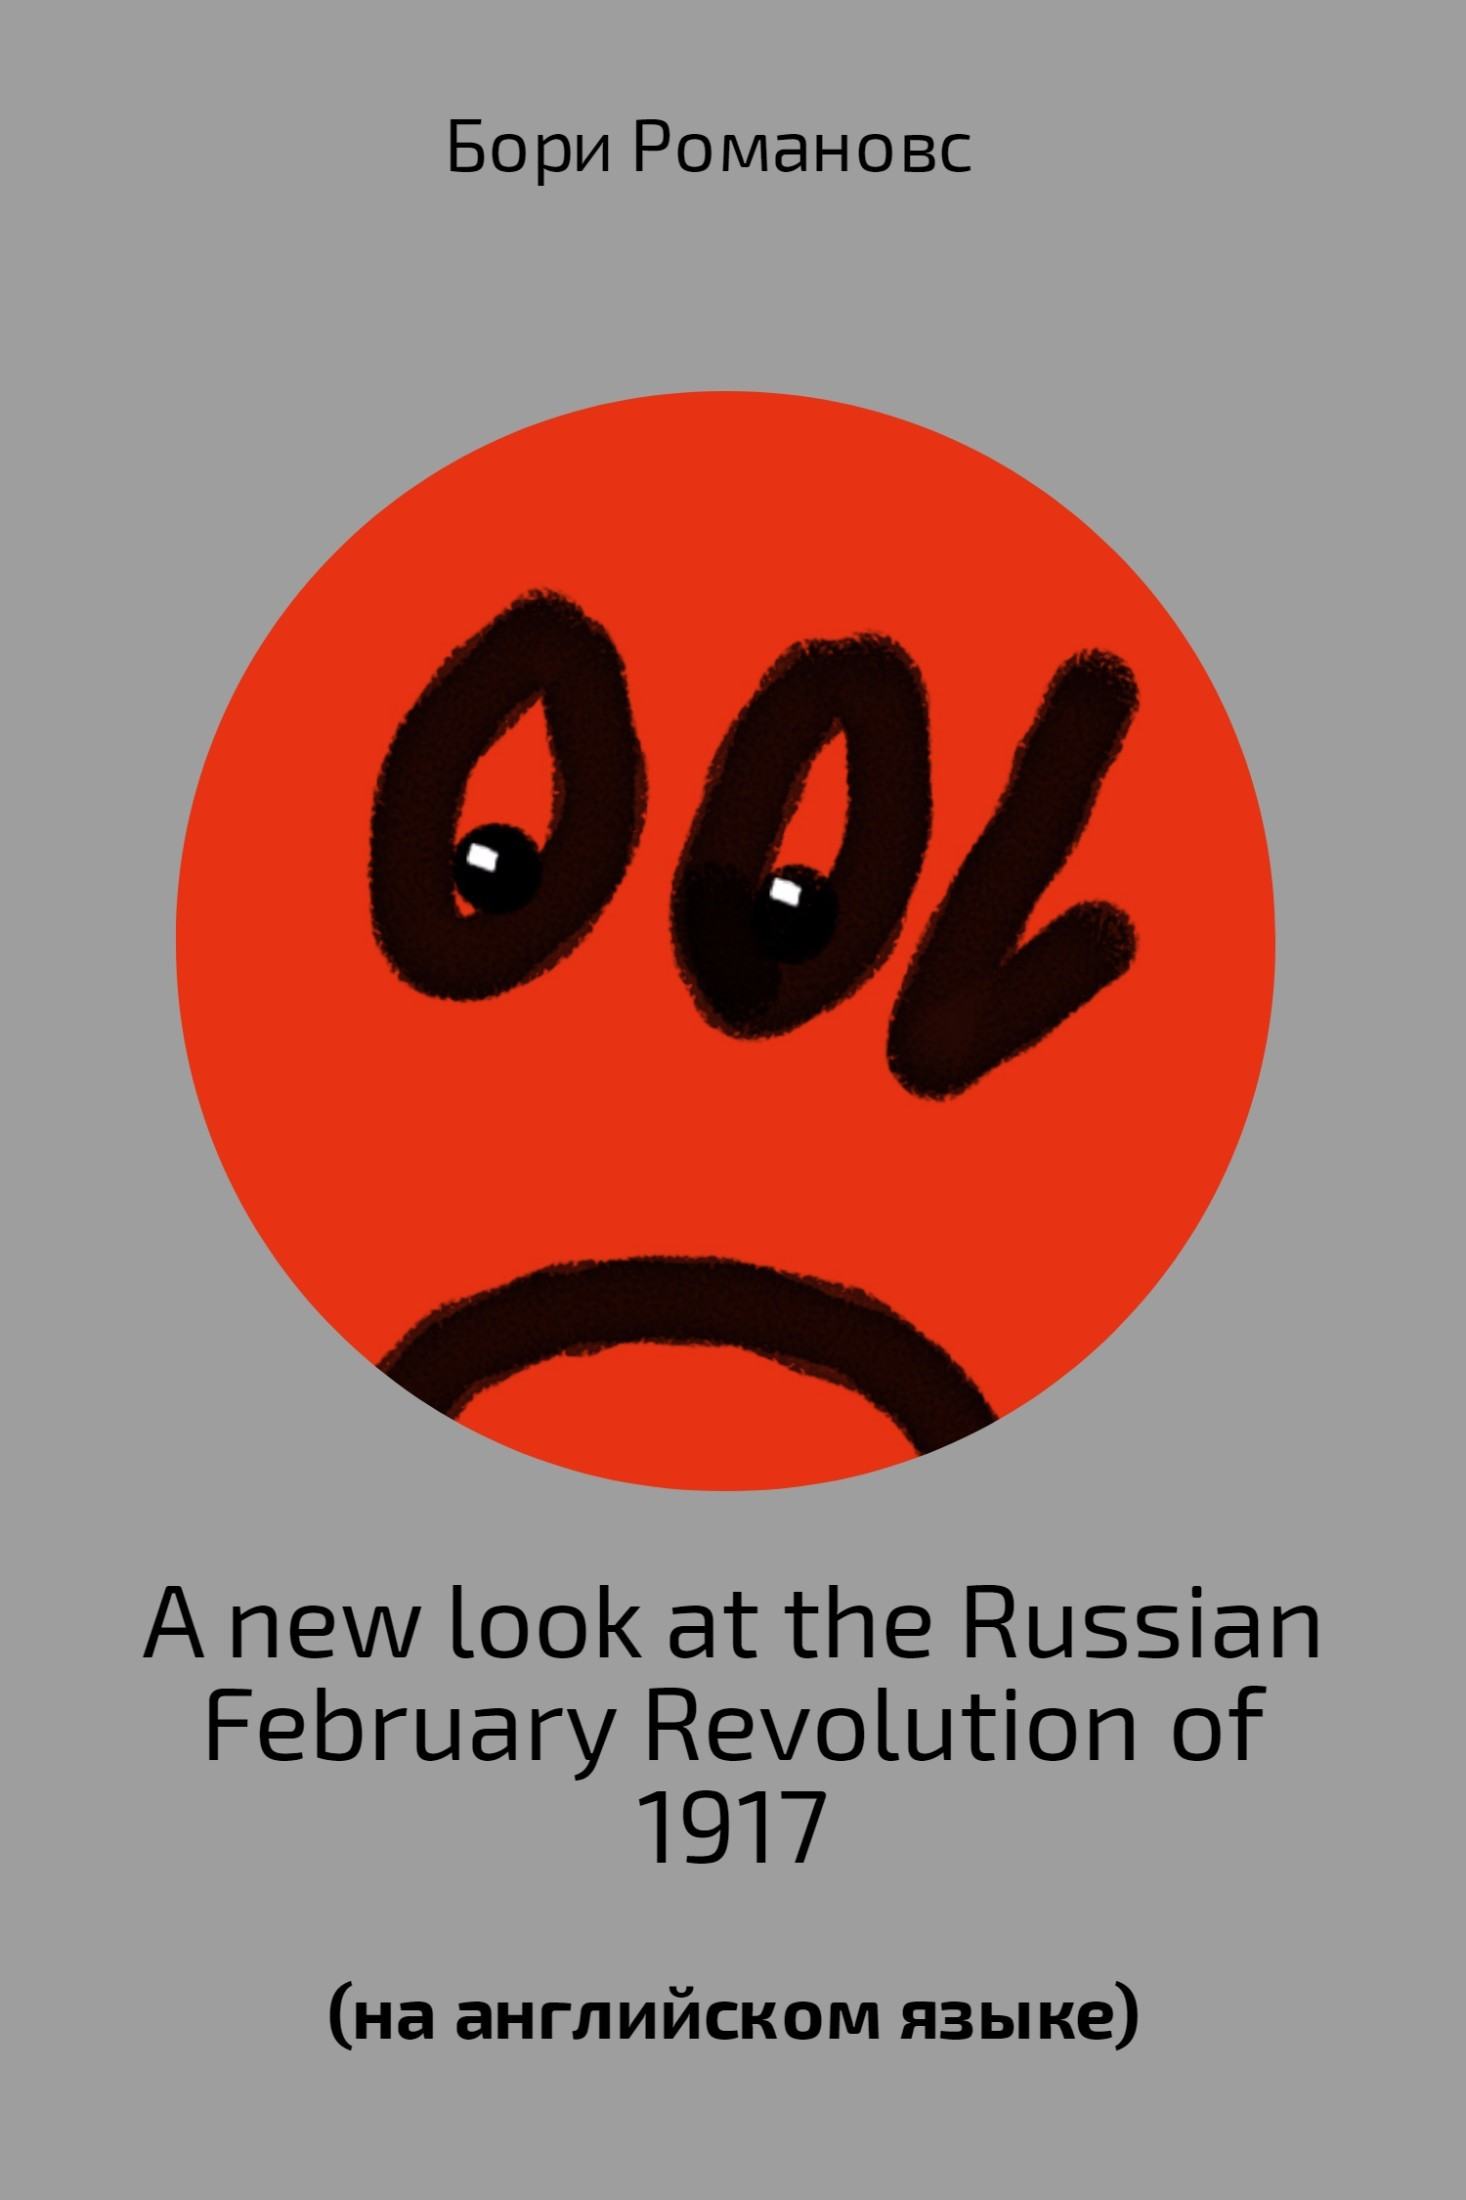 Борис Романов A new look at the Russian February Revolution of 1917